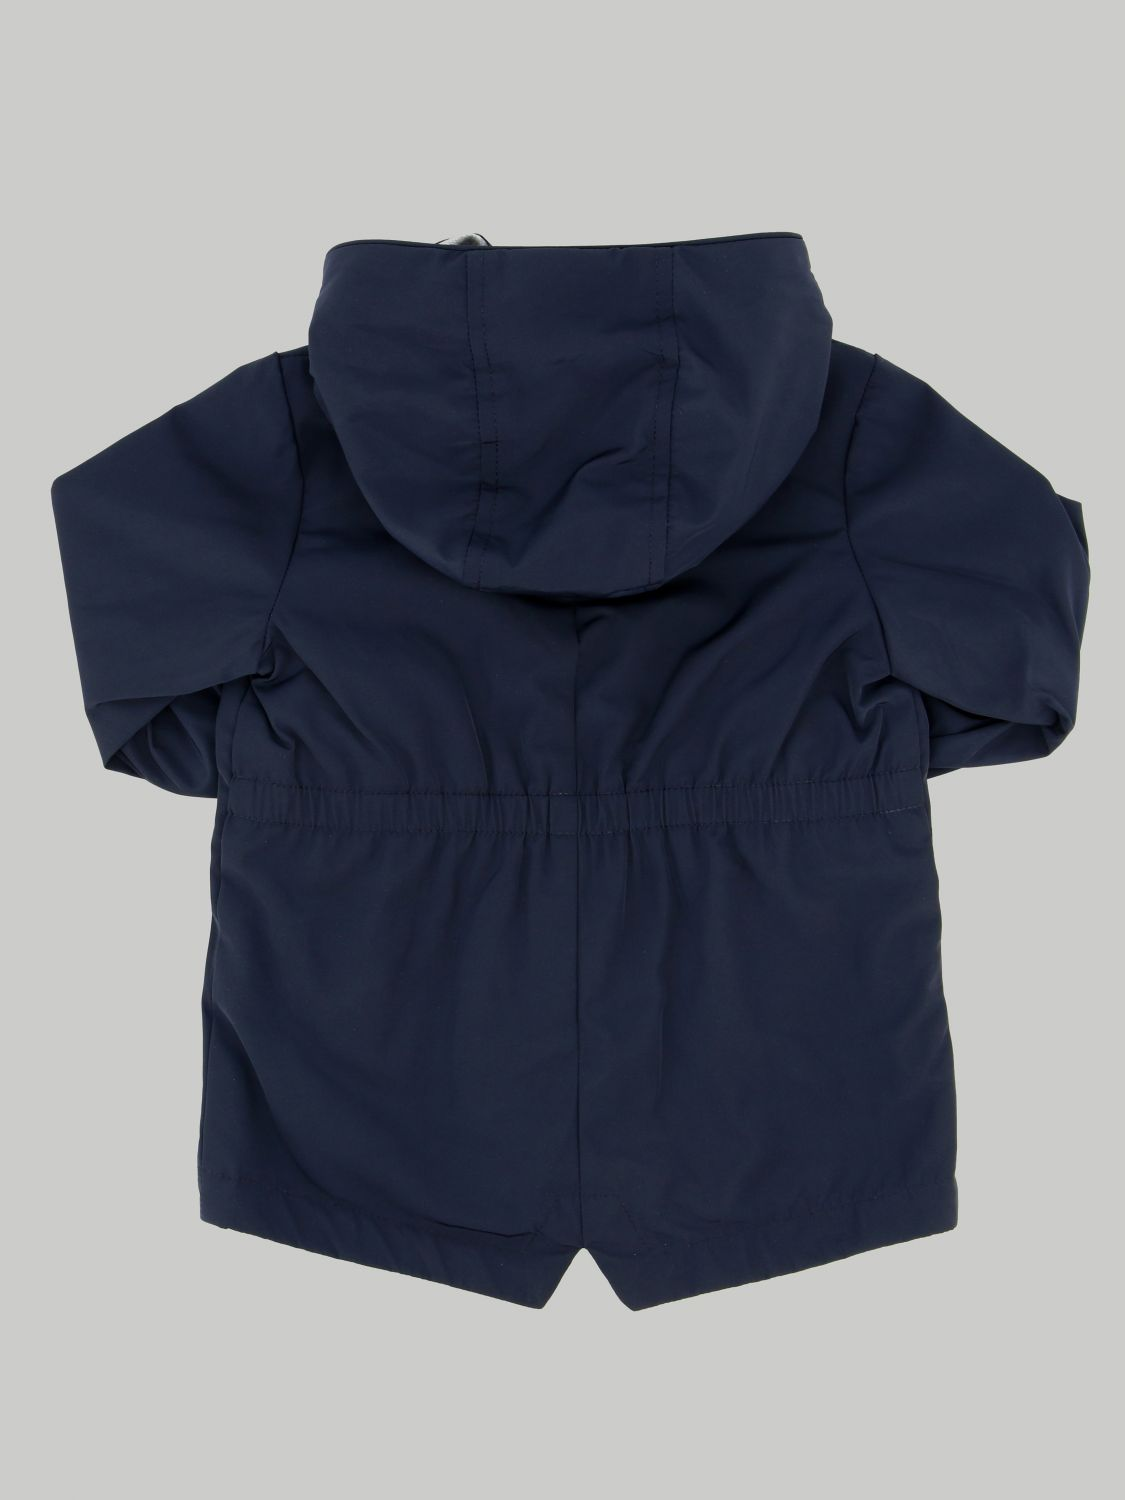 Moncler jacket with hood and logo blue 2